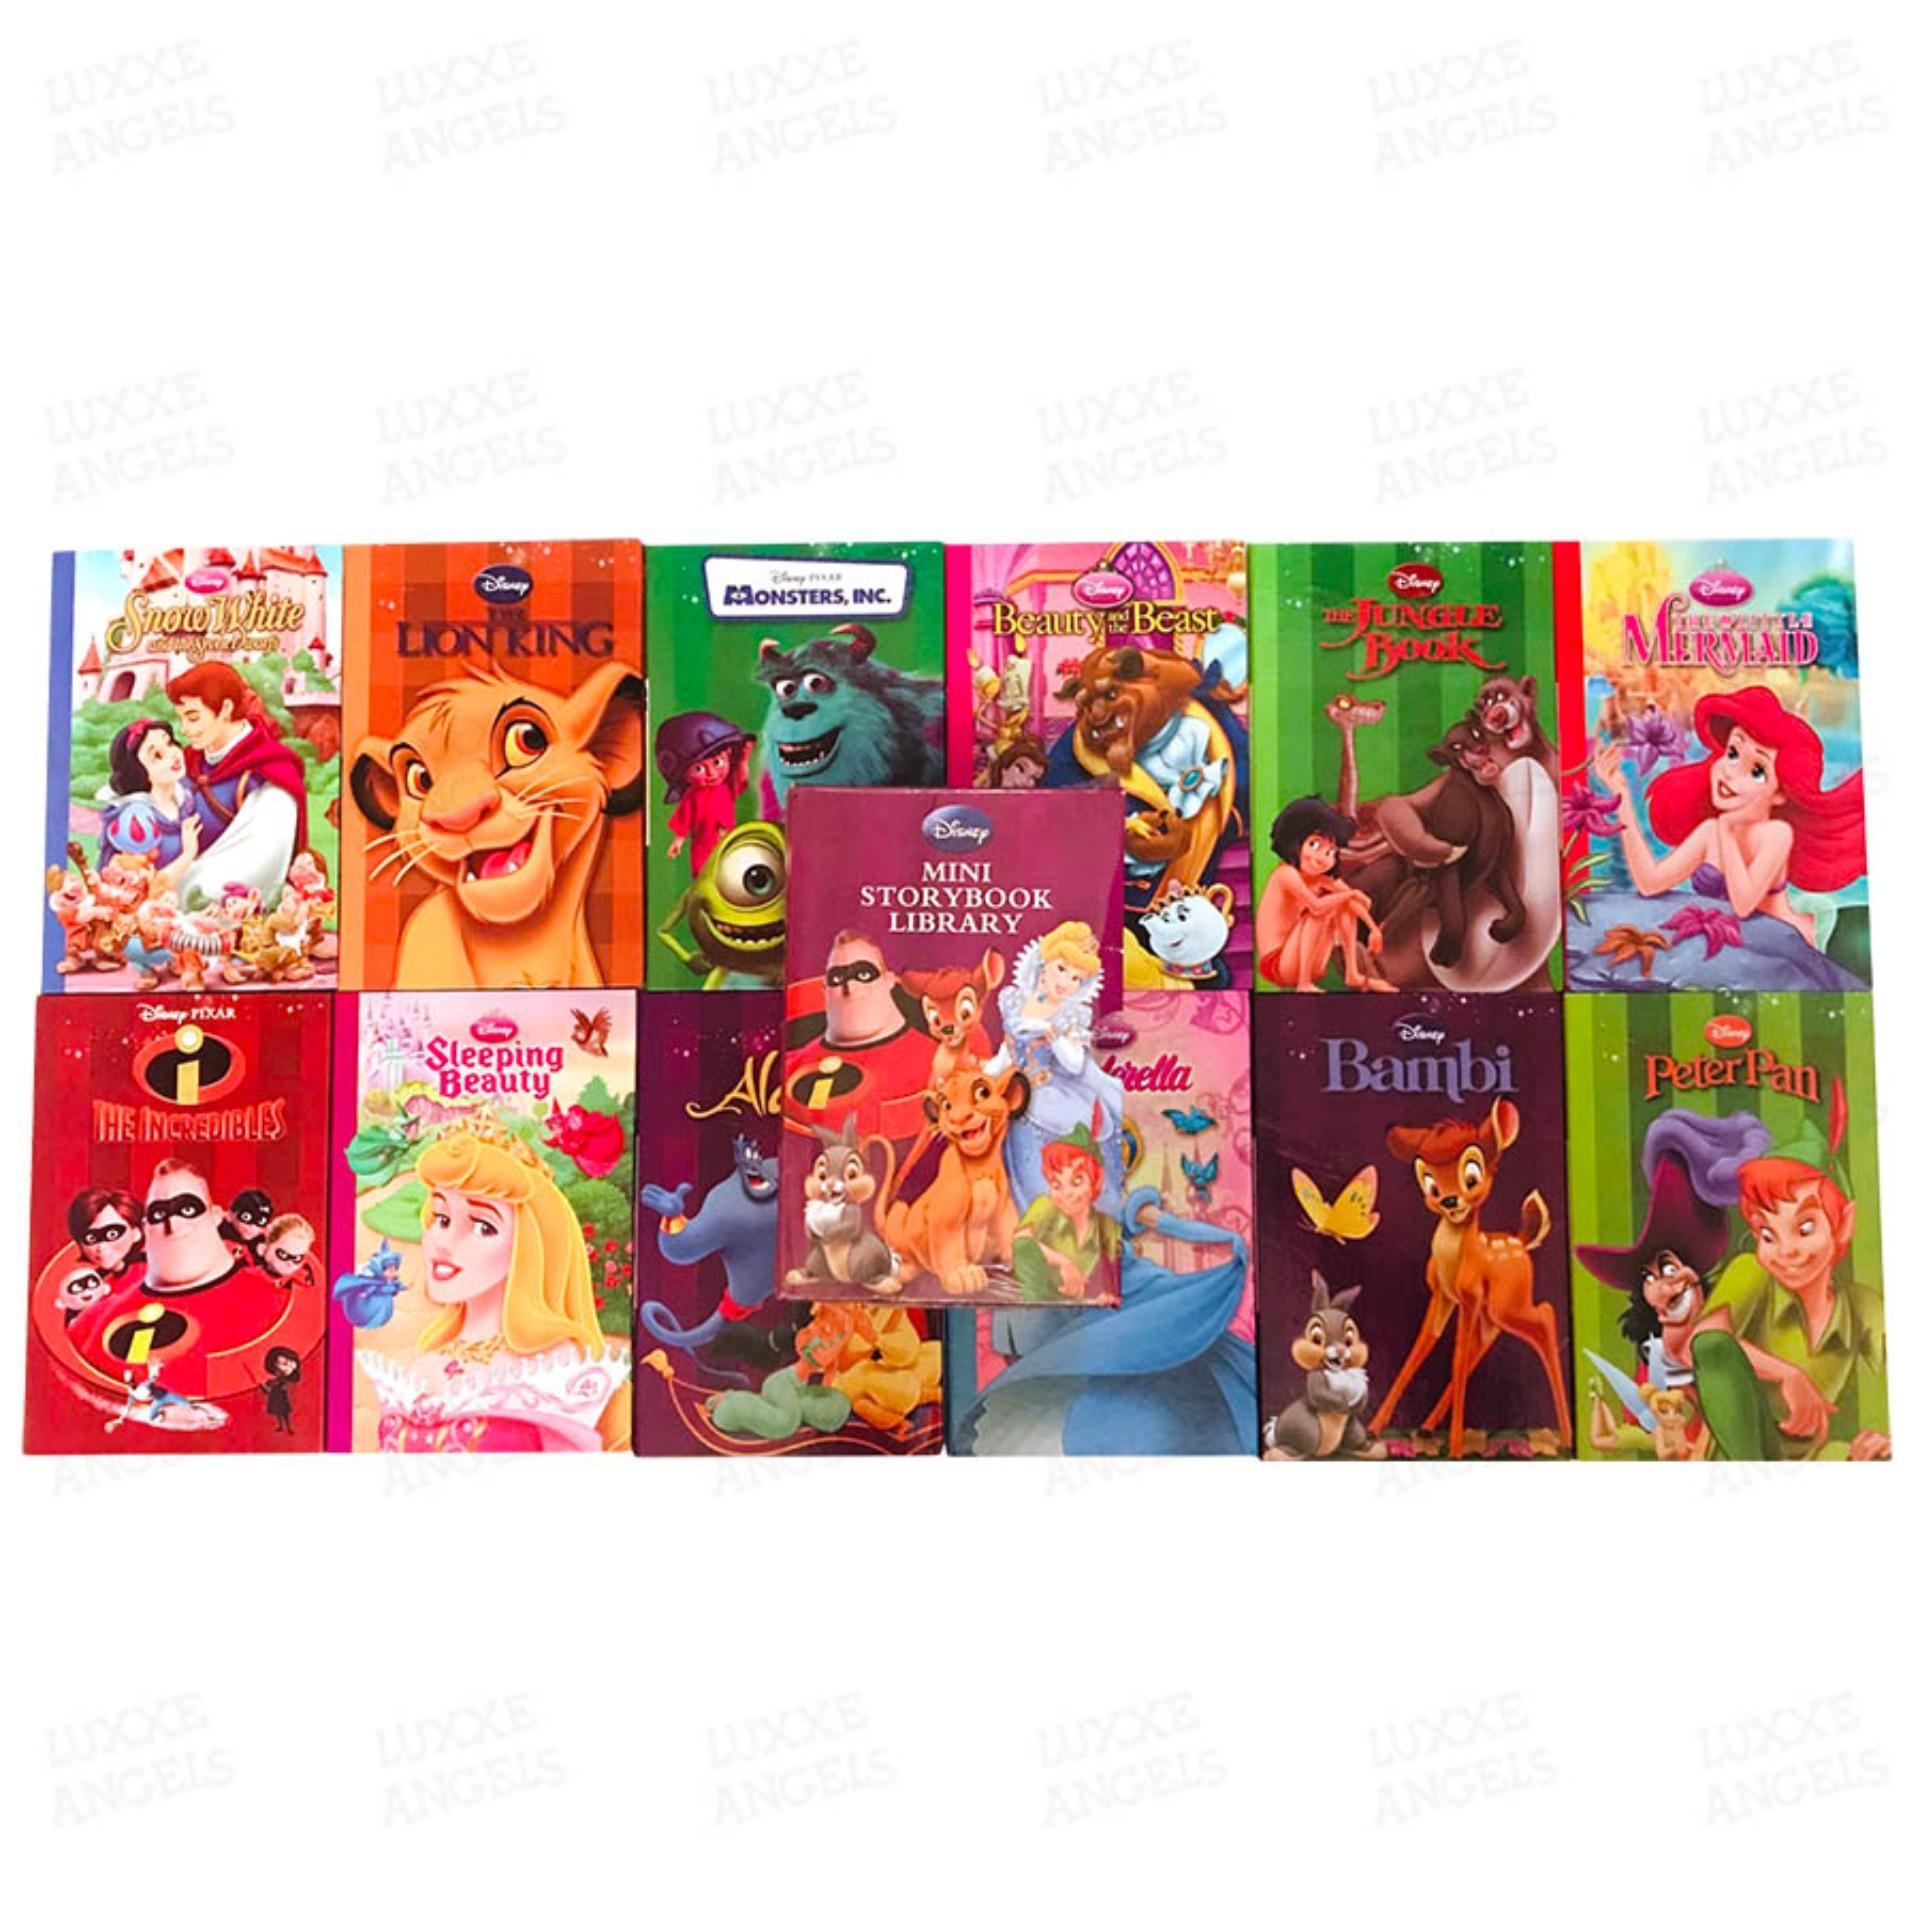 Educational Children's Learning Storybook set of 12/ book for kids